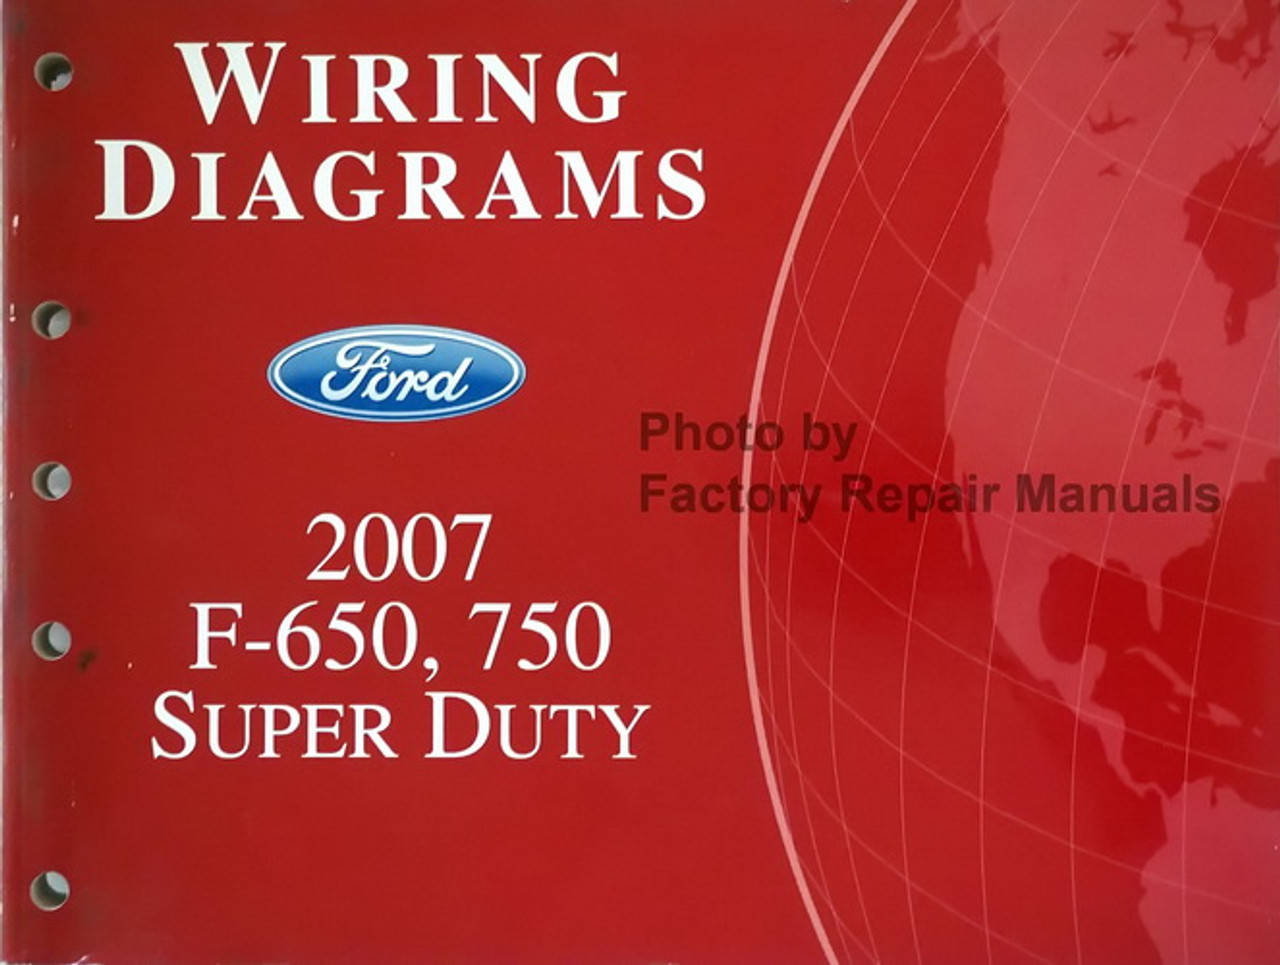 ford f650 super duty fuse diagram 2007 ford f650 f750 truck electrical wiring diagrams factory  2007 ford f650 f750 truck electrical